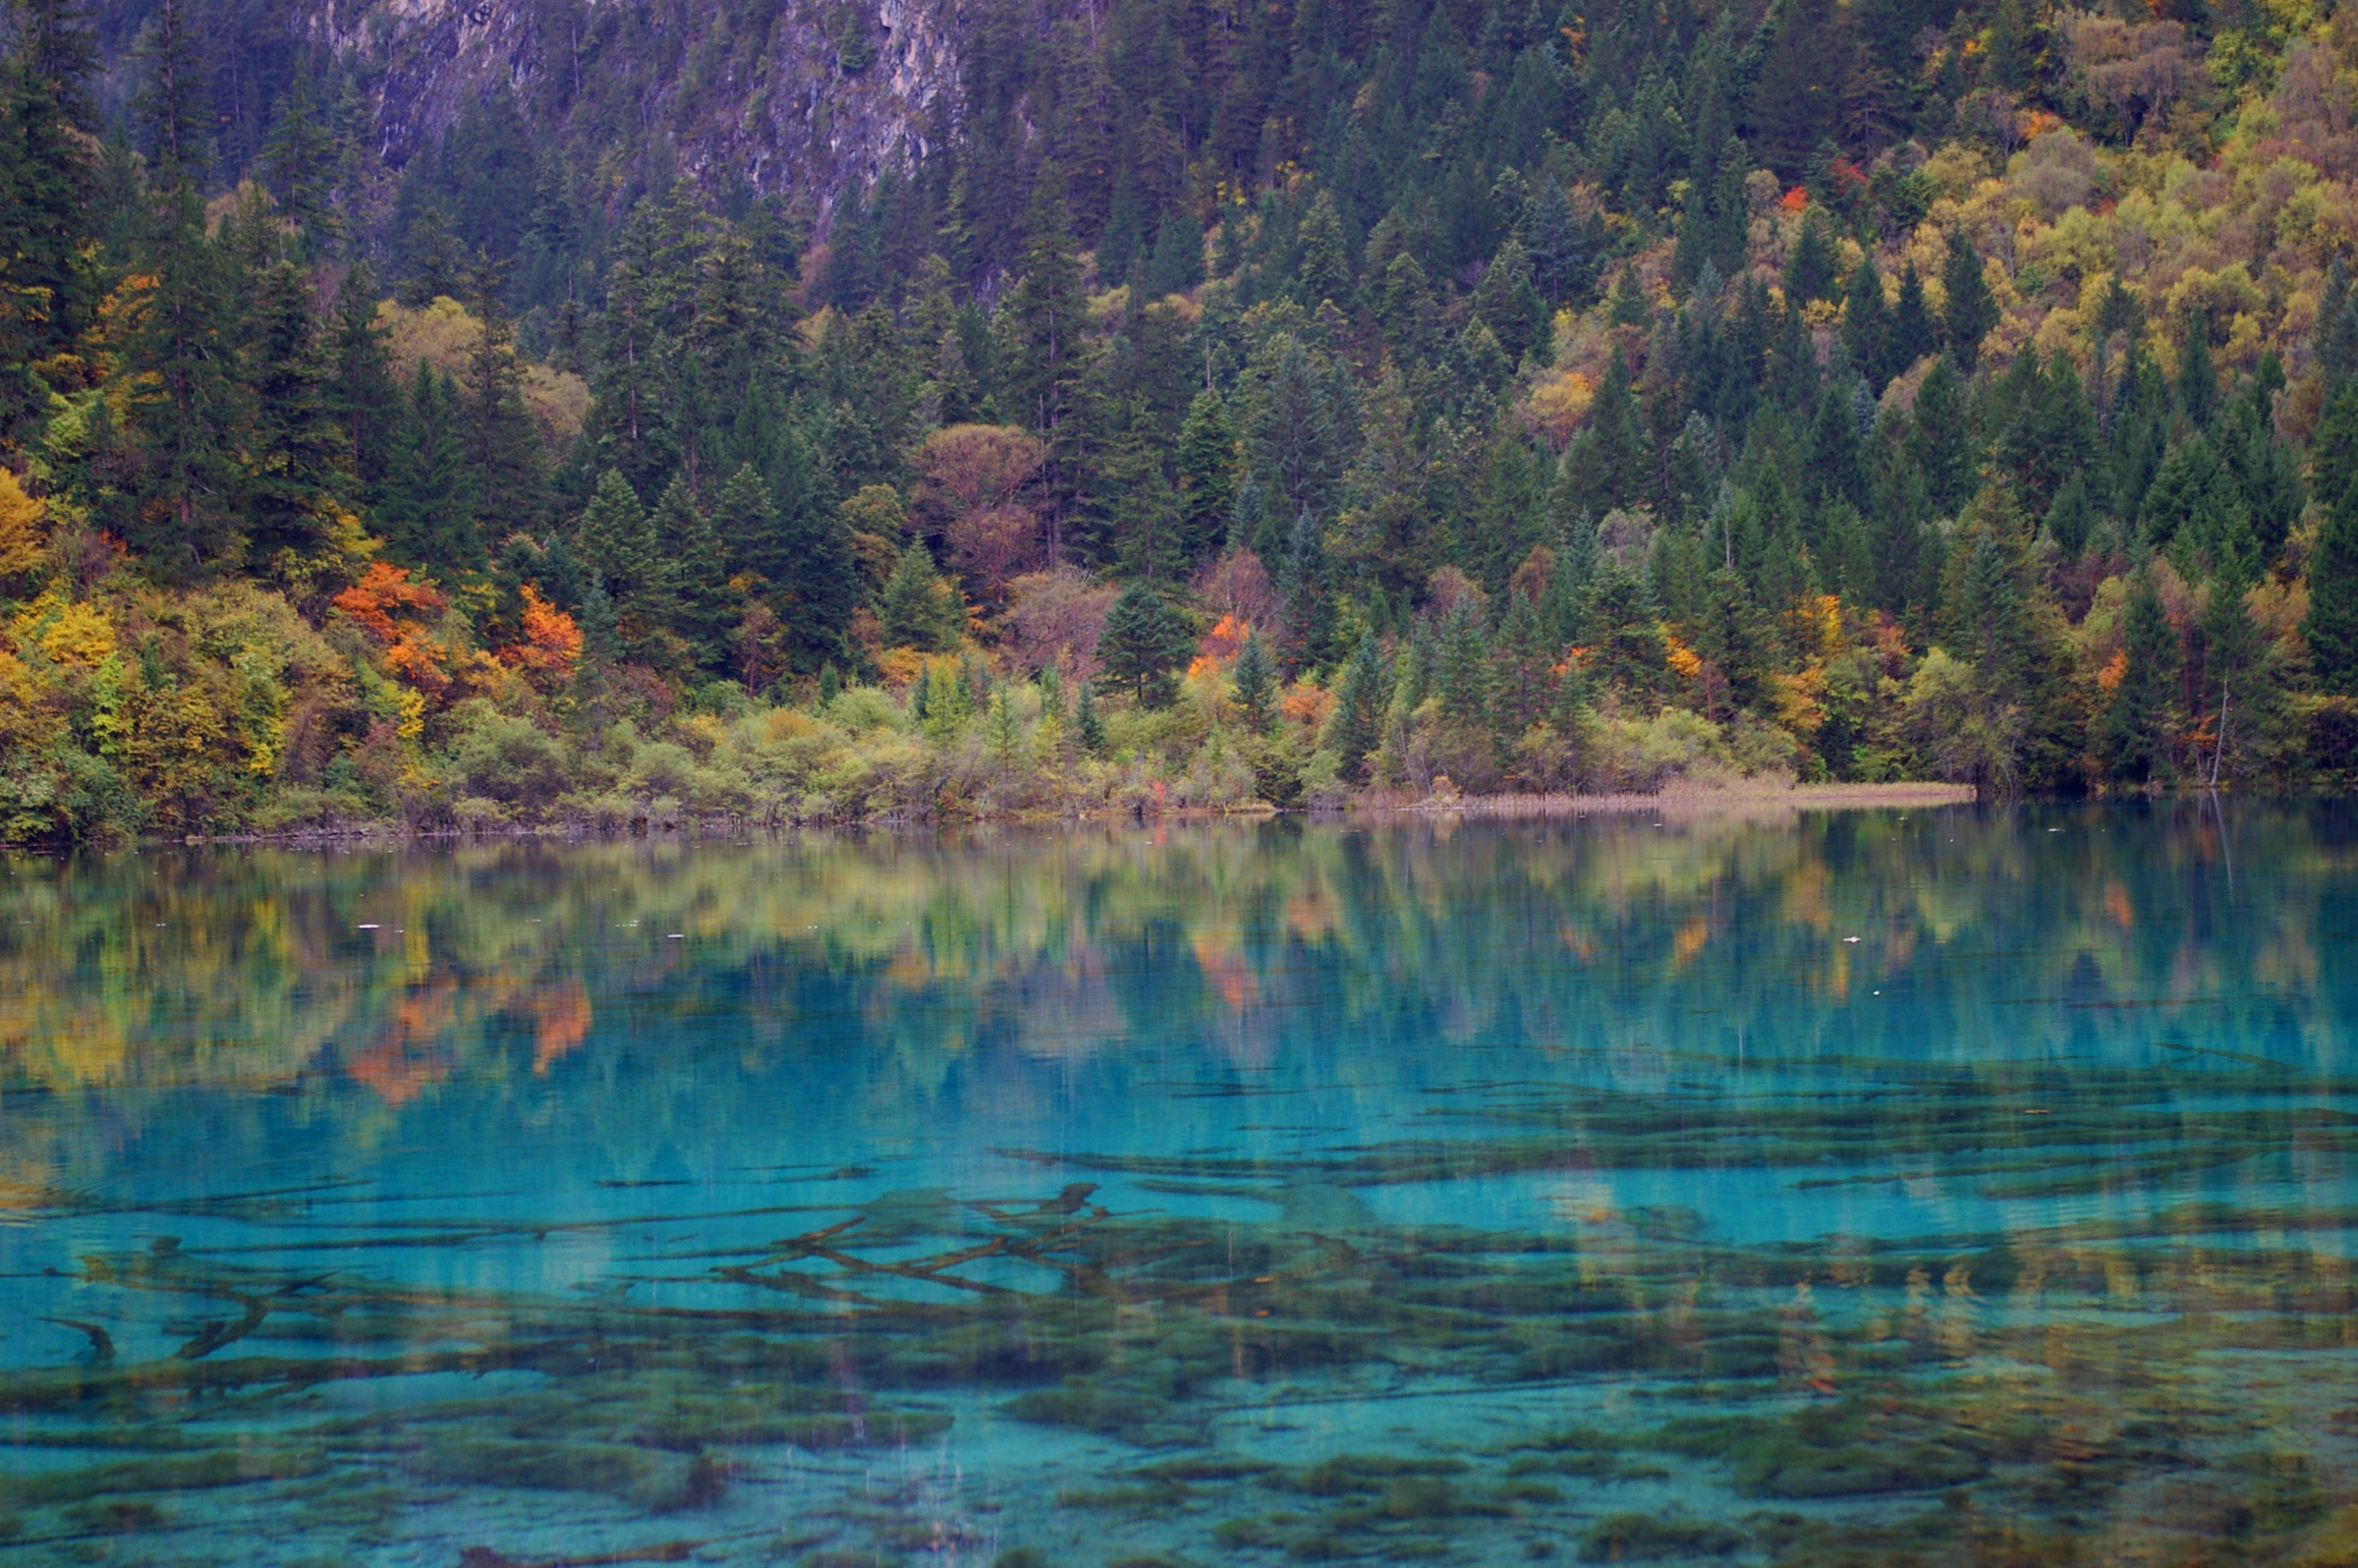 Beautiful natural Attraction of Cyan Blue Lake and Colorful Plants and Trees Located in China.